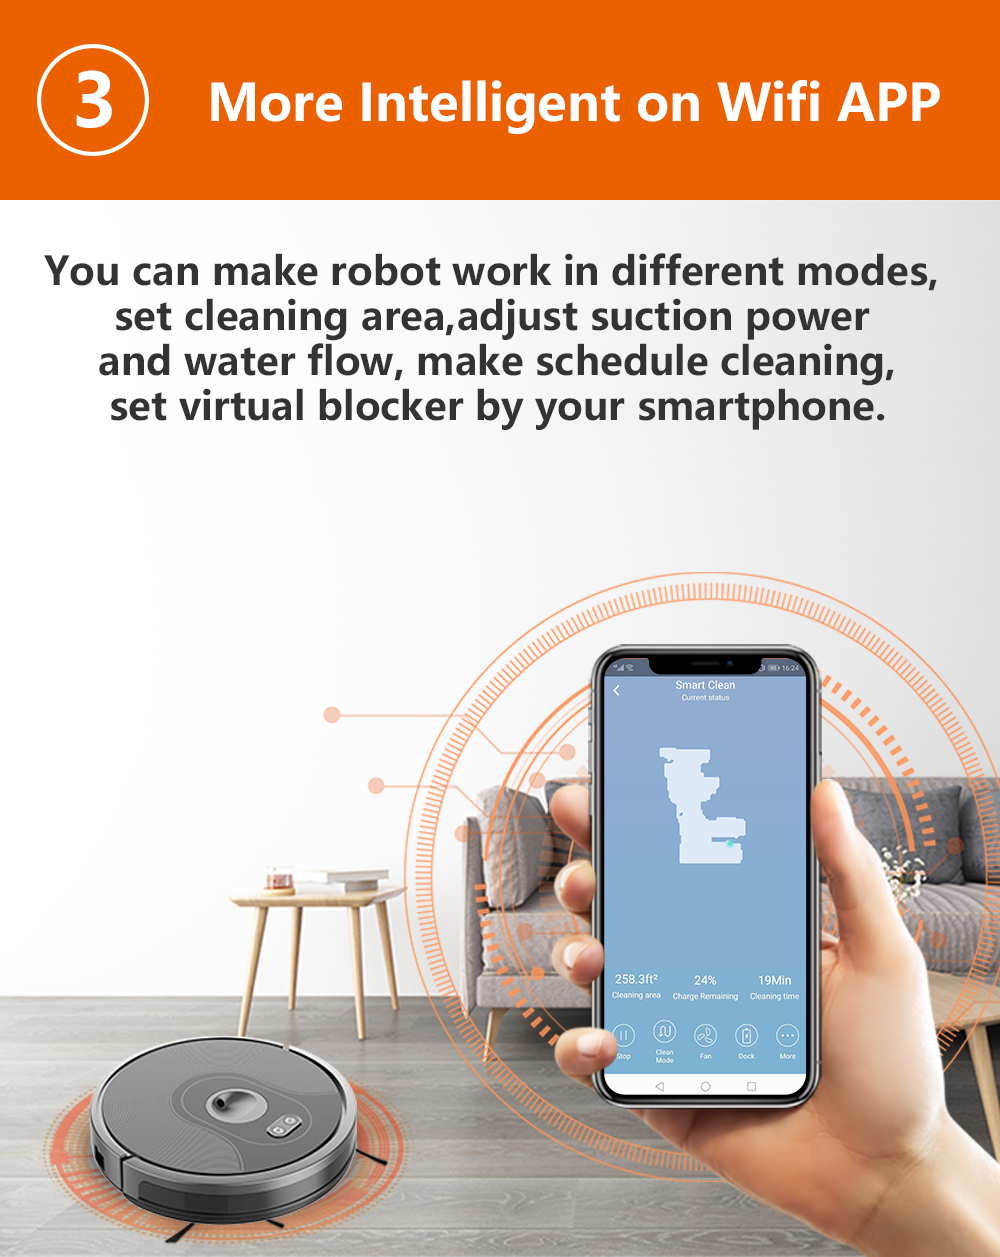 H013202b8416f489ca1424610dc203febv ABIR X6 Robot Vacuum Cleaner with Camera Navigation,WIFI APP controlled,Breakpoint Continue Cleaning,Draw Cleaning Area,Save Map